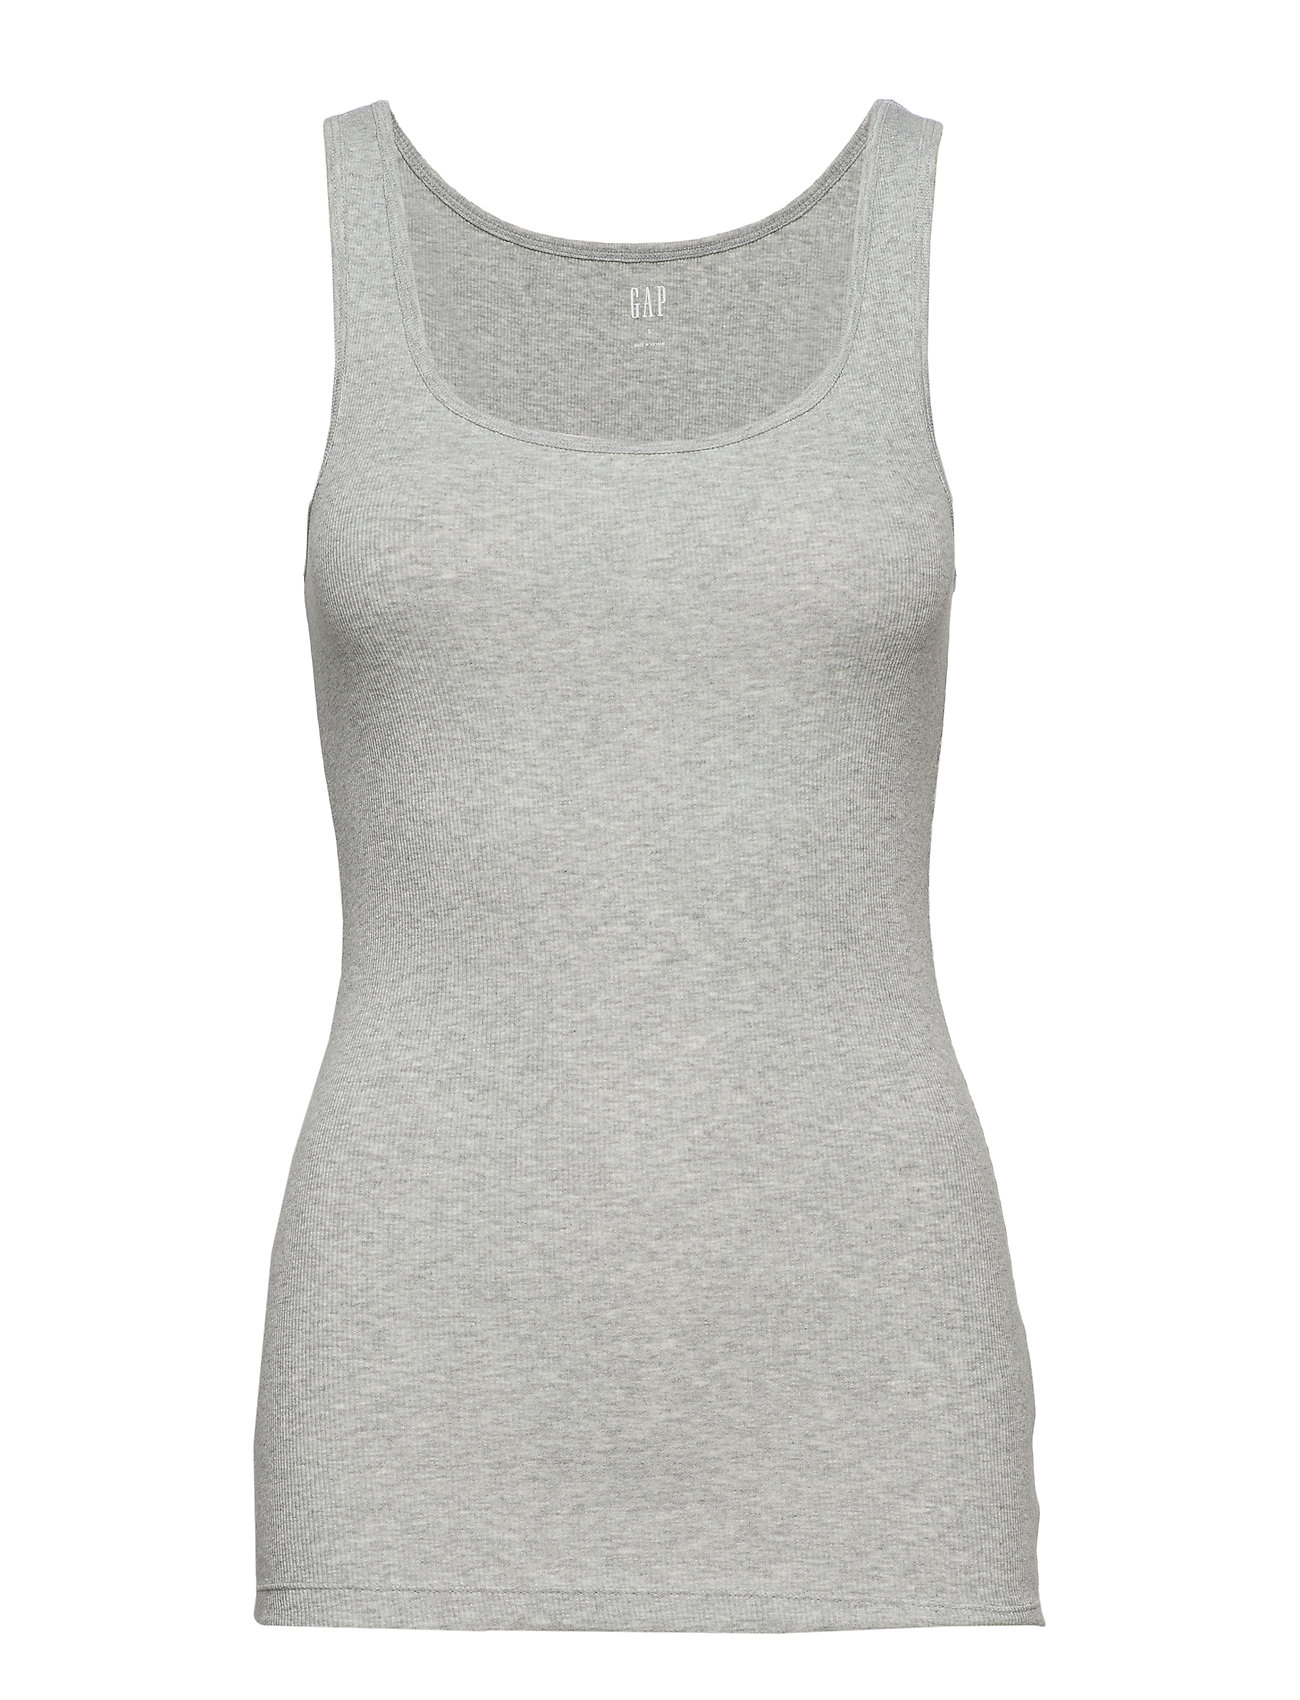 GAP V-SL BF TANK - LIGHT HEATHER GREY B10